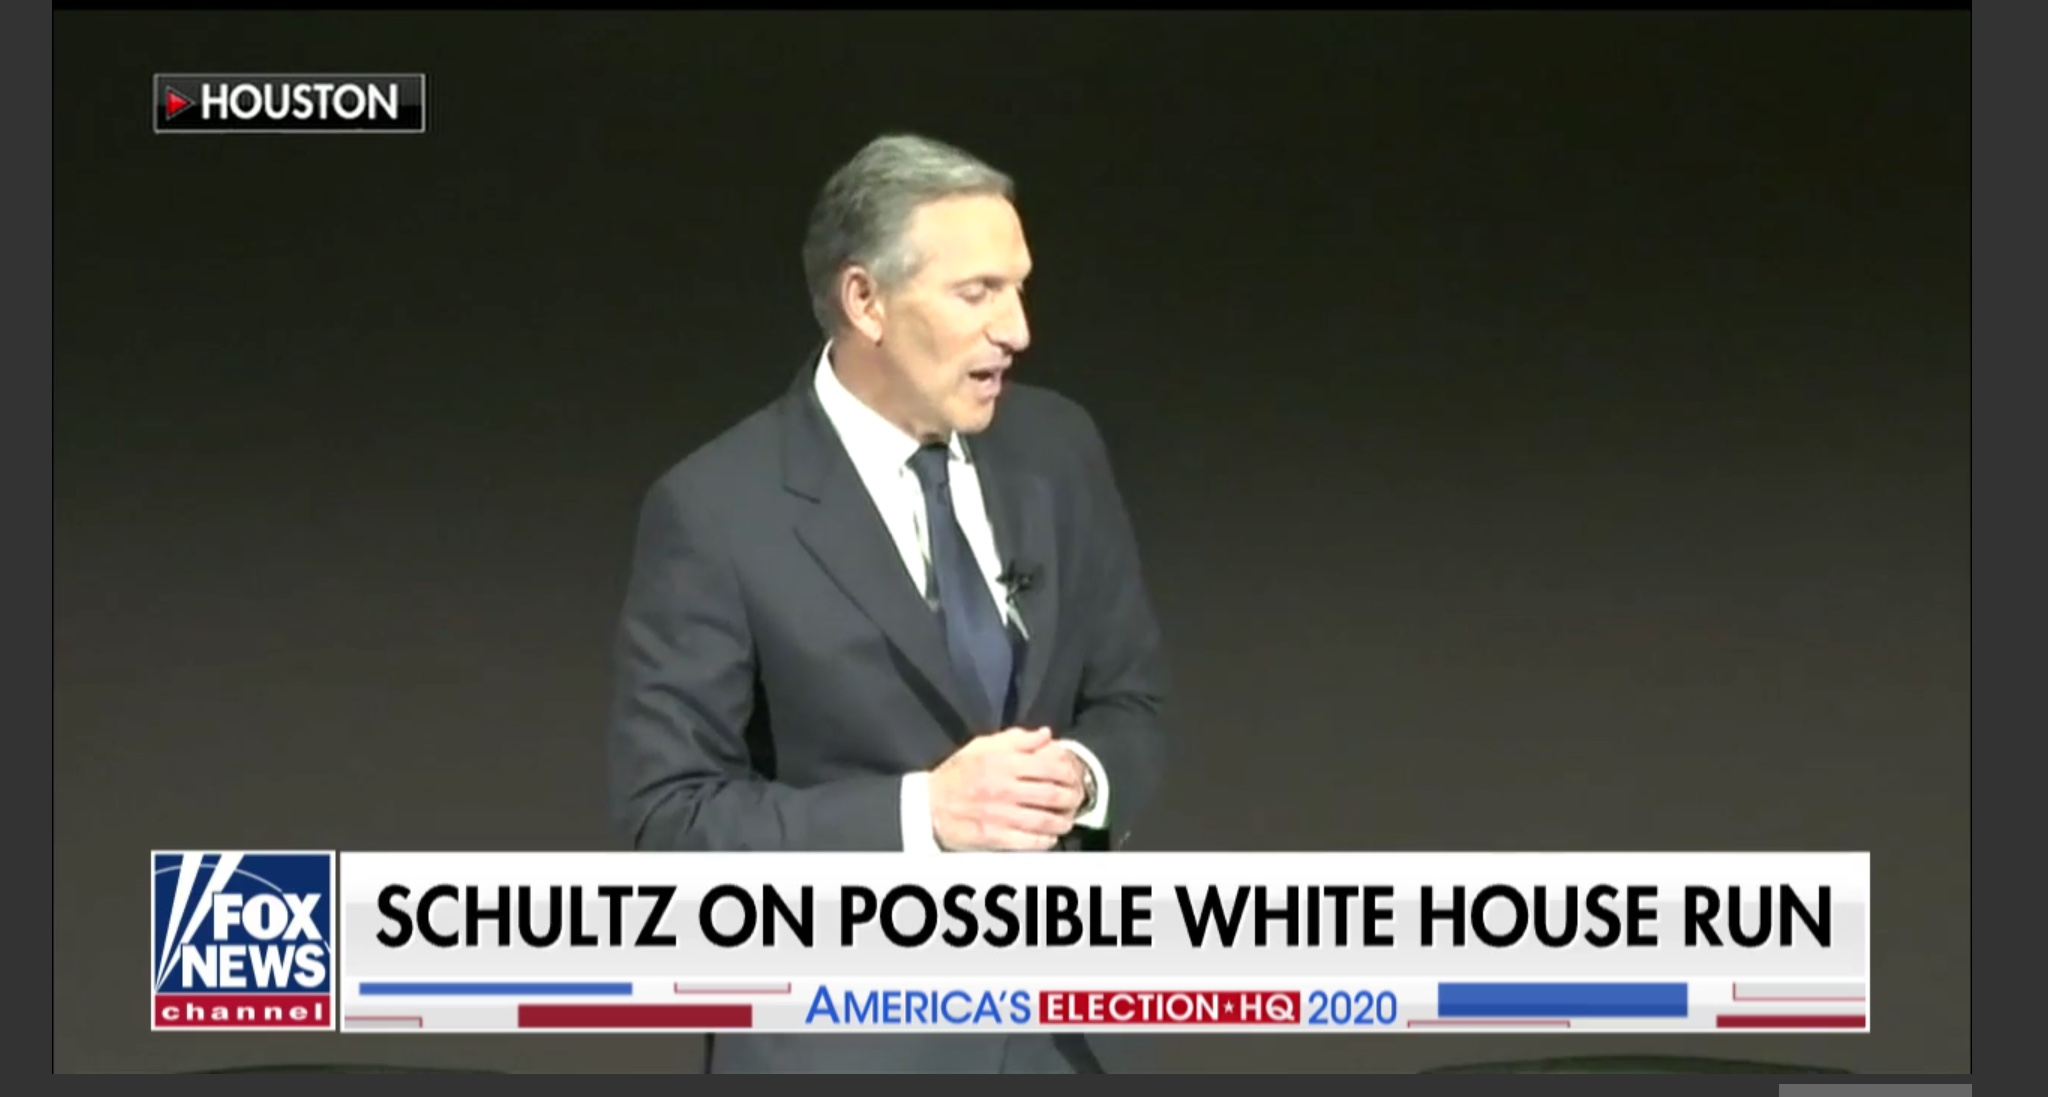 Howard Schultz speaks to supporters. Fox News screenshot.